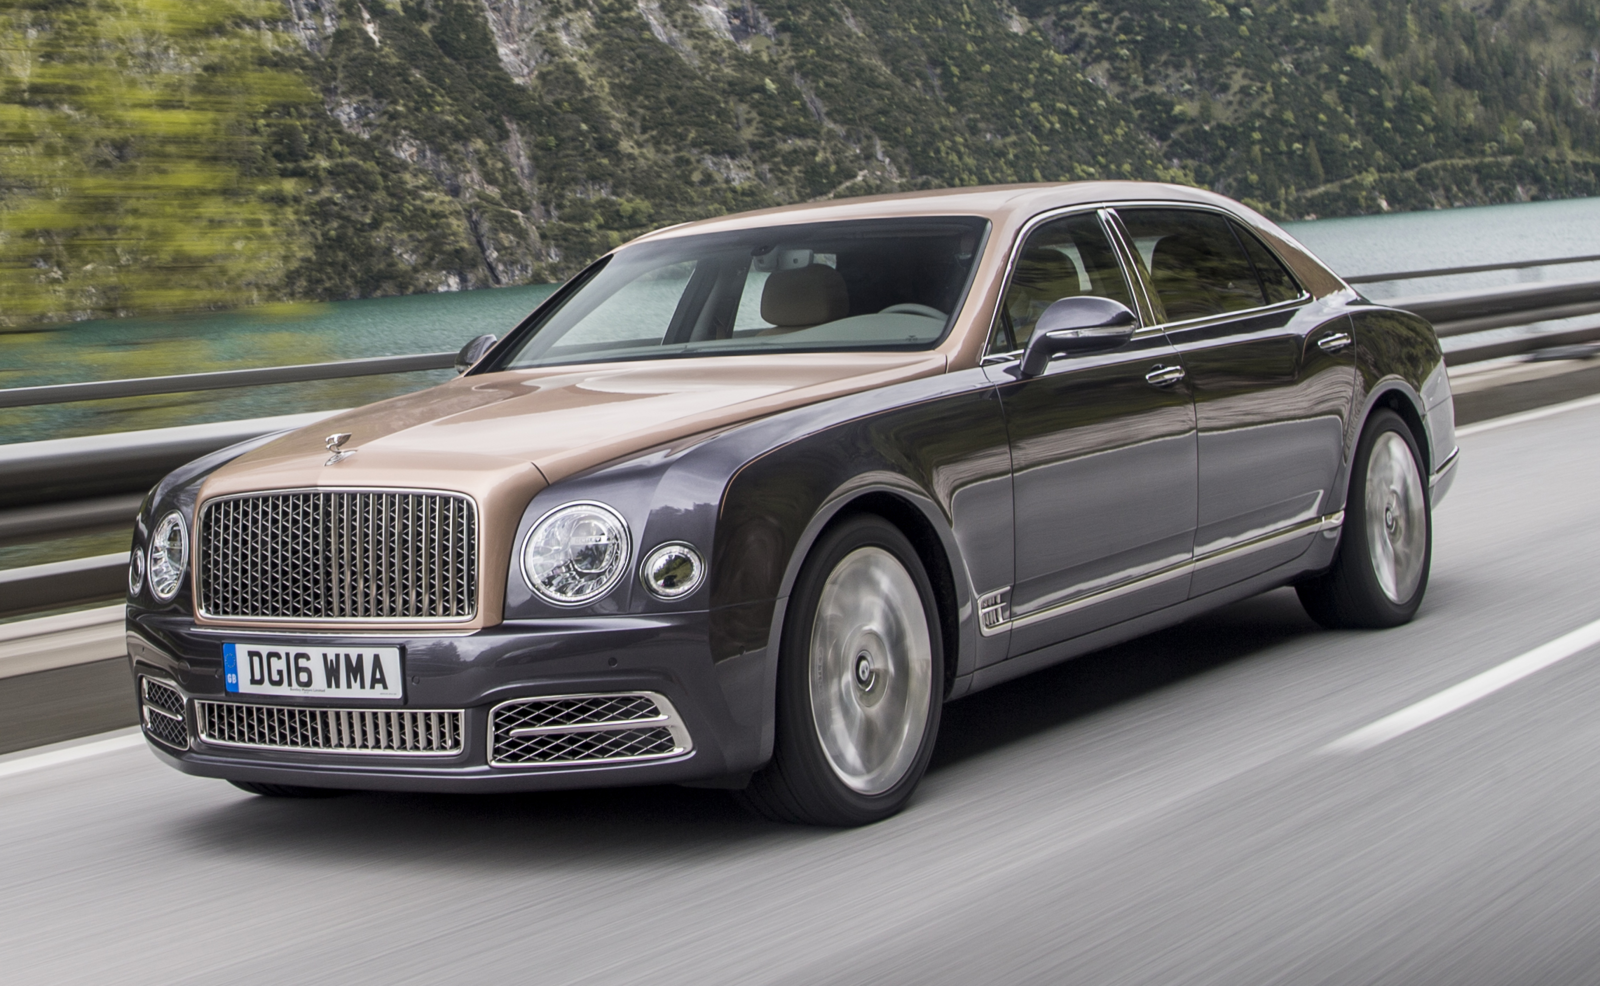 2018 Bentley Mulsanne Overview CarGurus